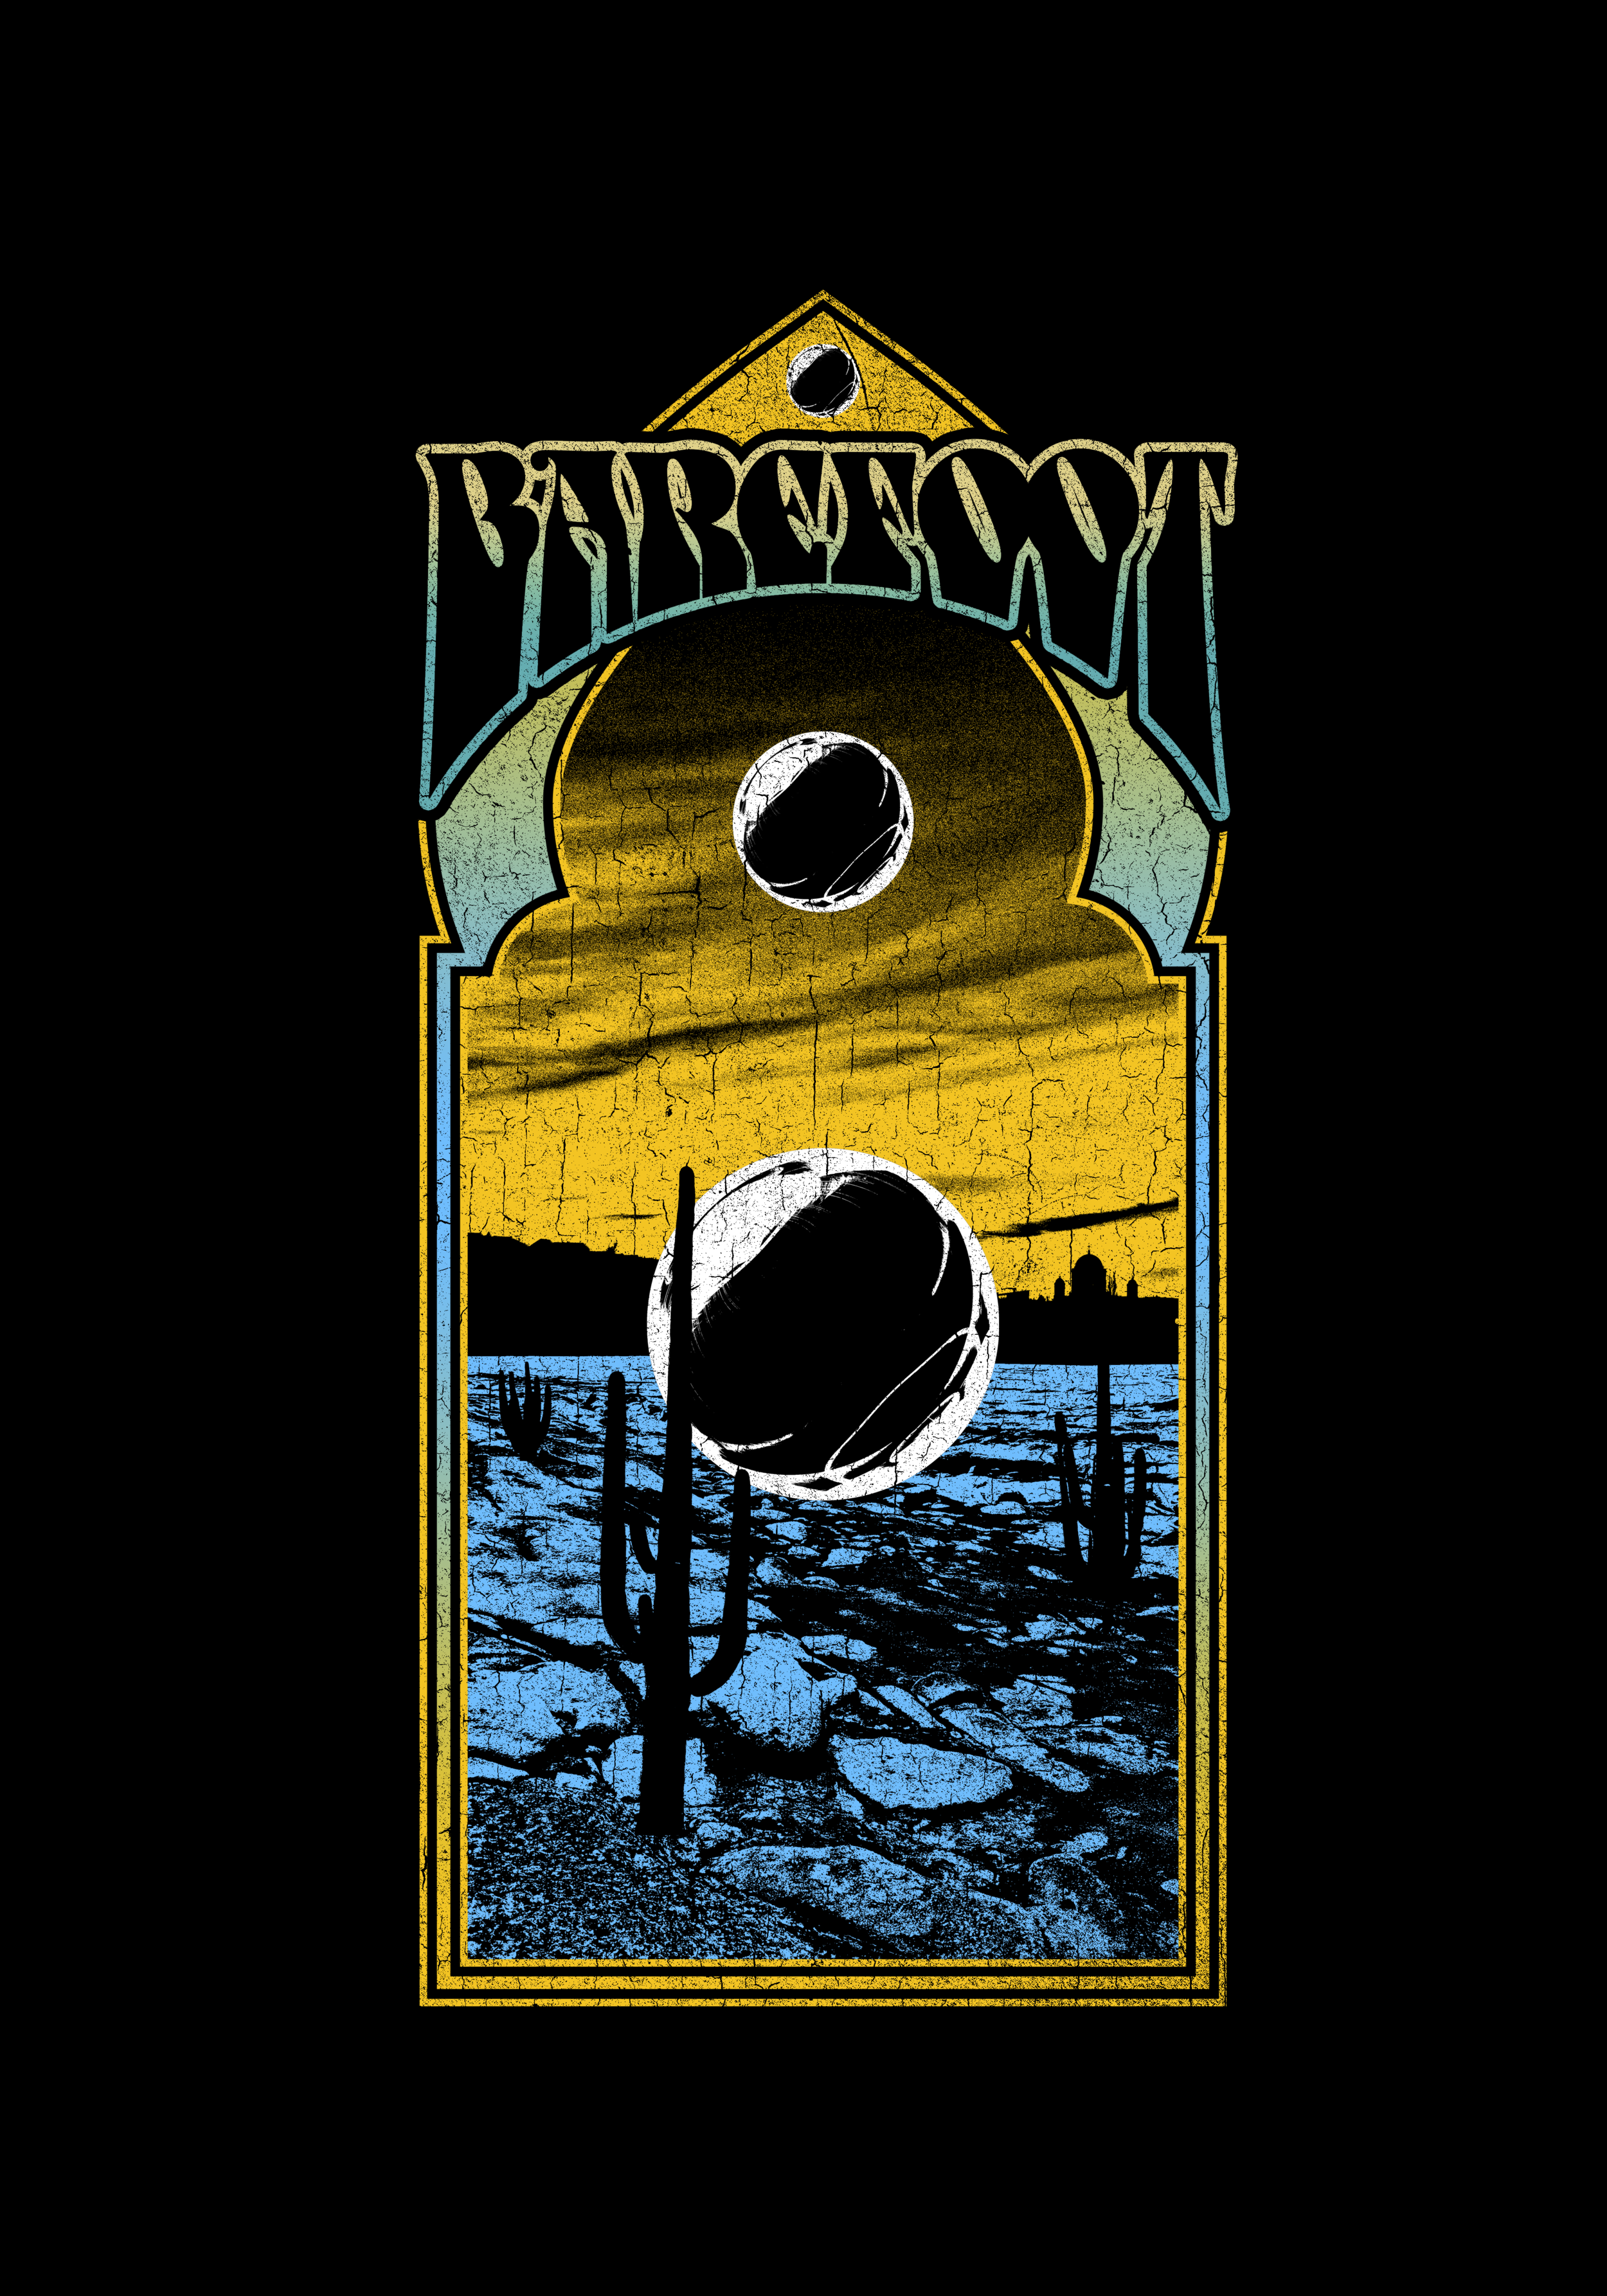 Pro Barefoot Shirt Design NEW COLORS.png